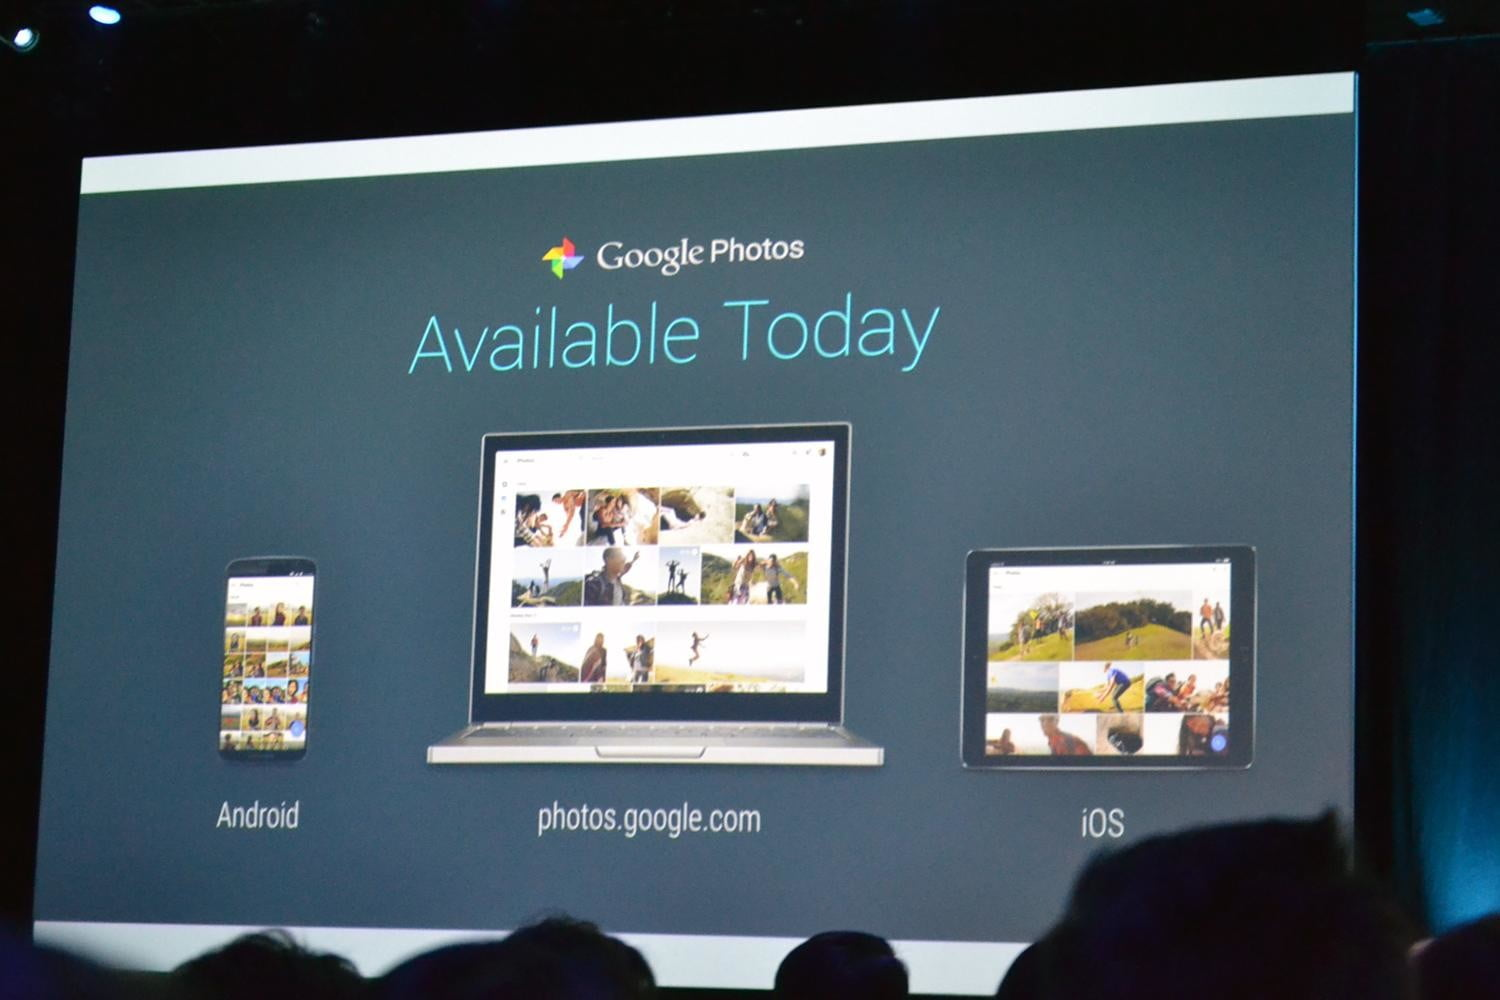 google photos app news 2015 io 1